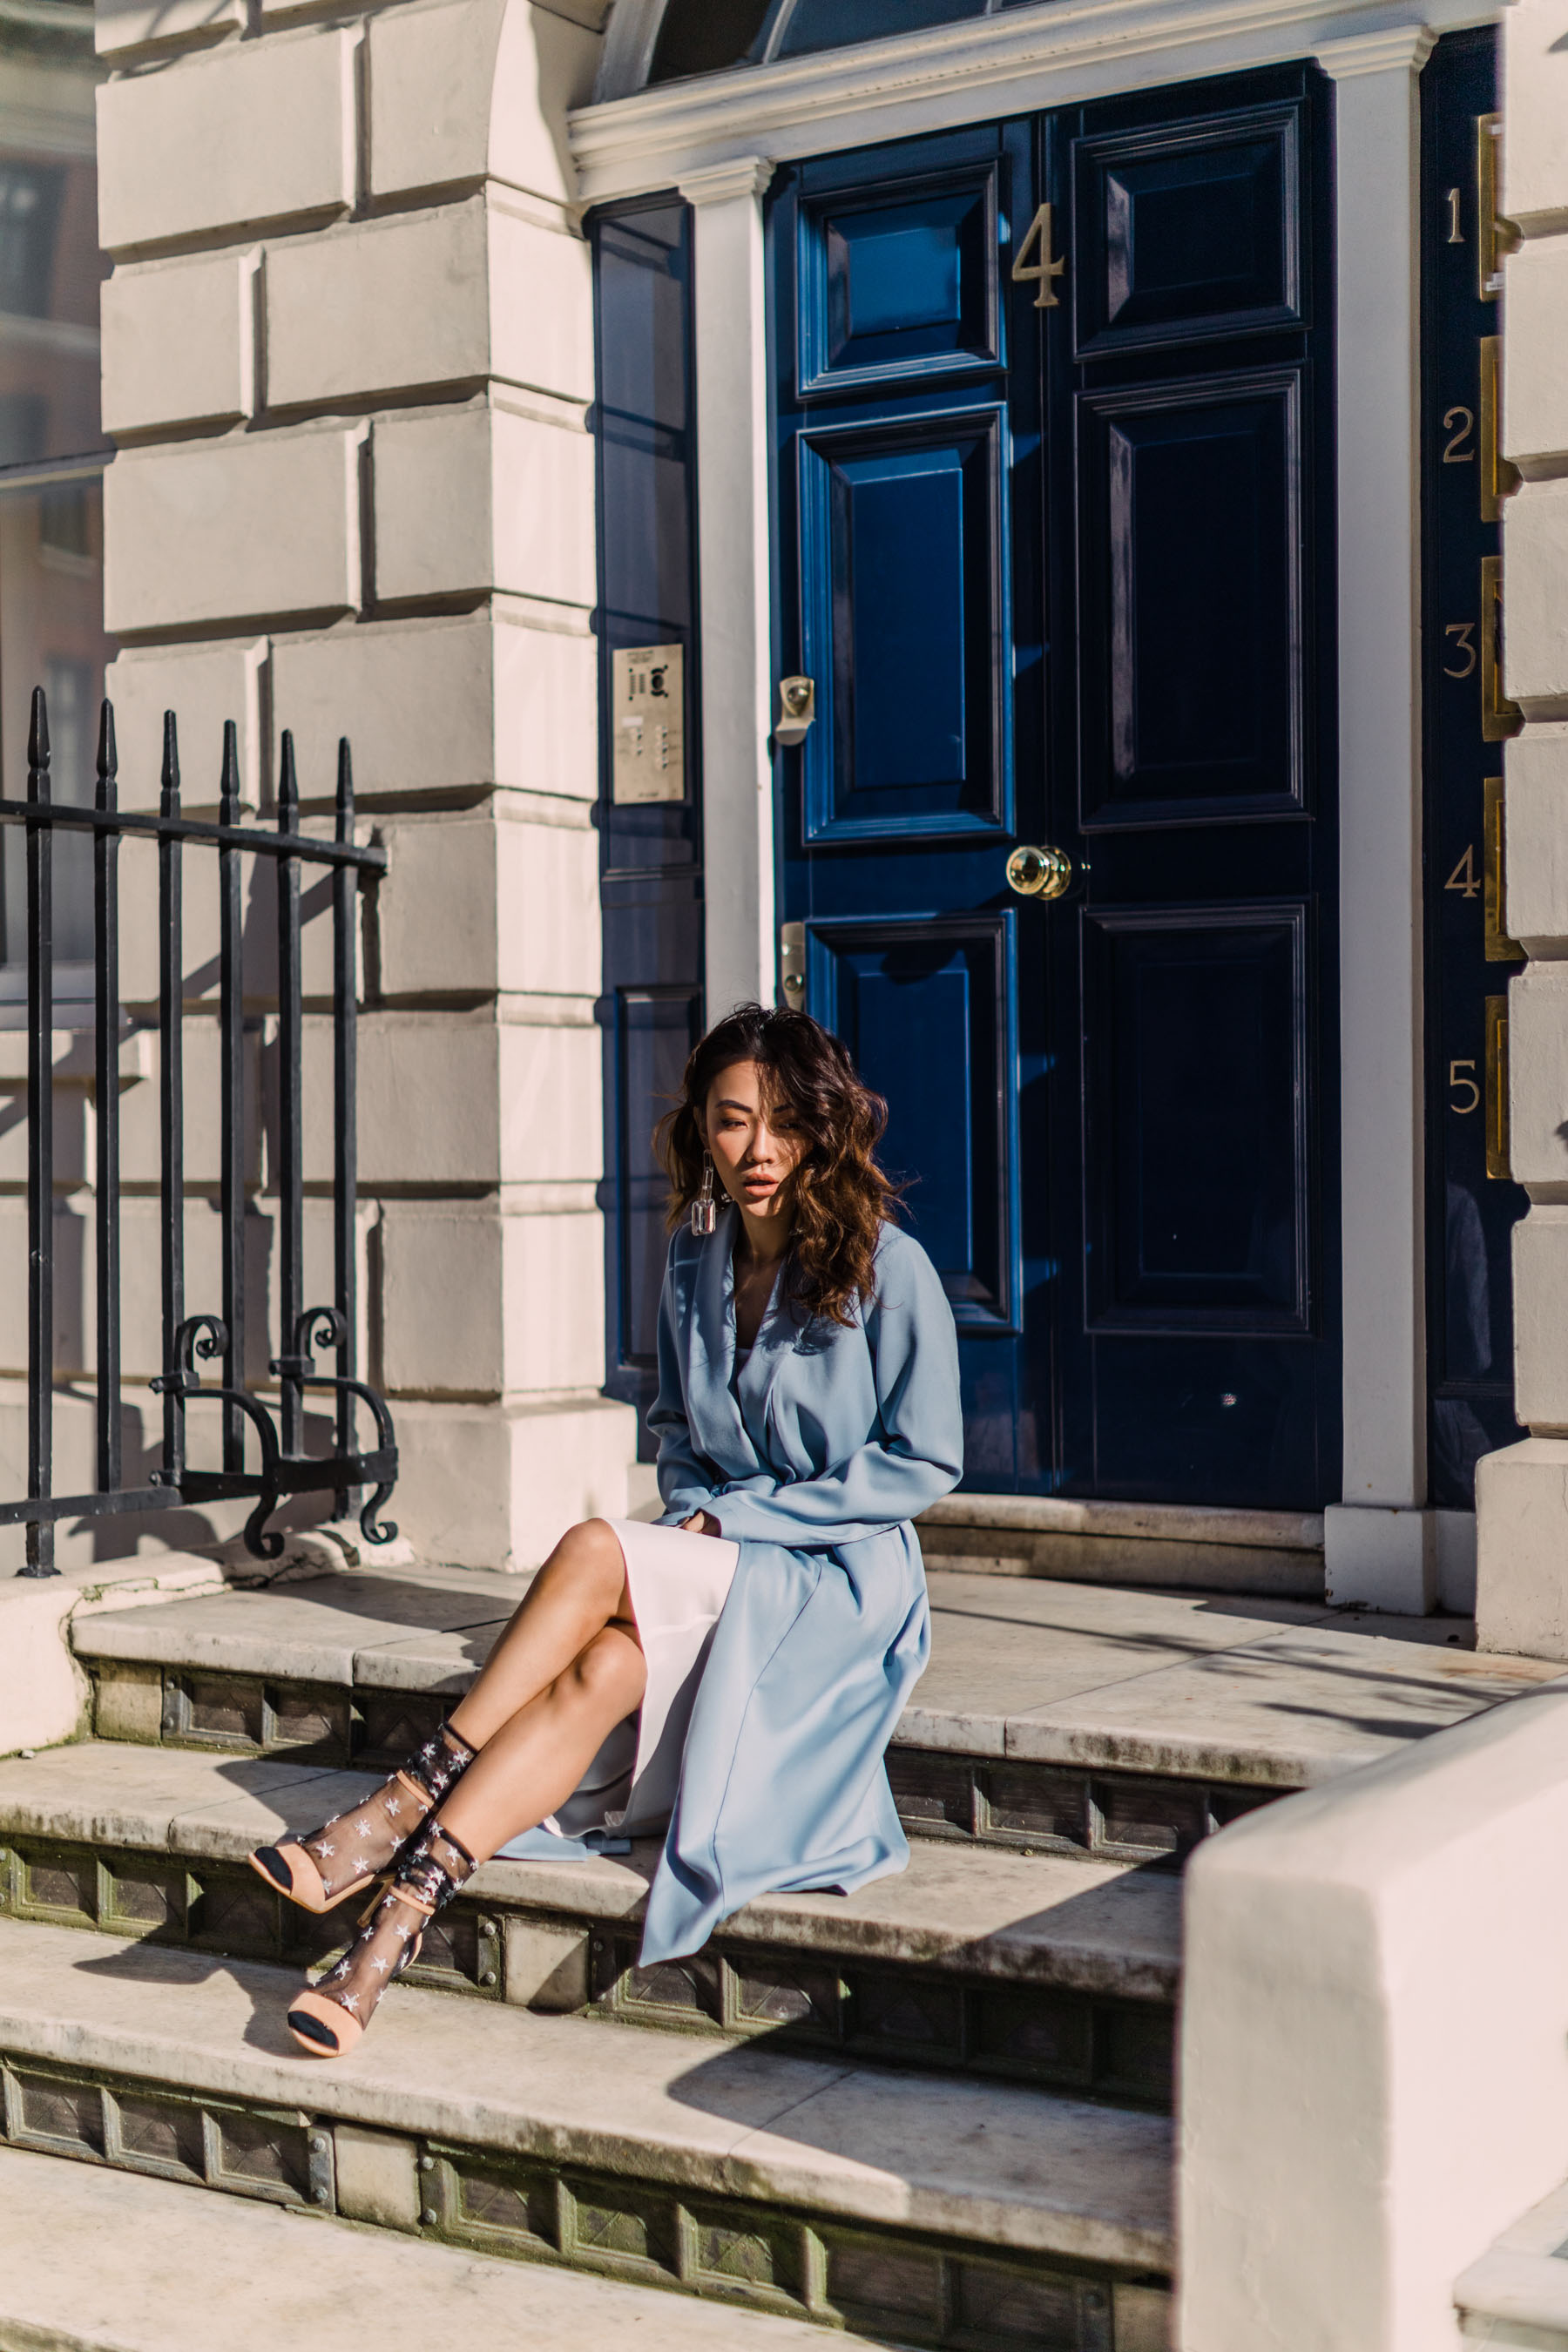 Transition Your Wardrobe into Spring - DSW Nude heels, blue trench coat, socks with sandals, nude heels, nude sandals, minimalist heels, ankle strap heels // Notjessfashion.com